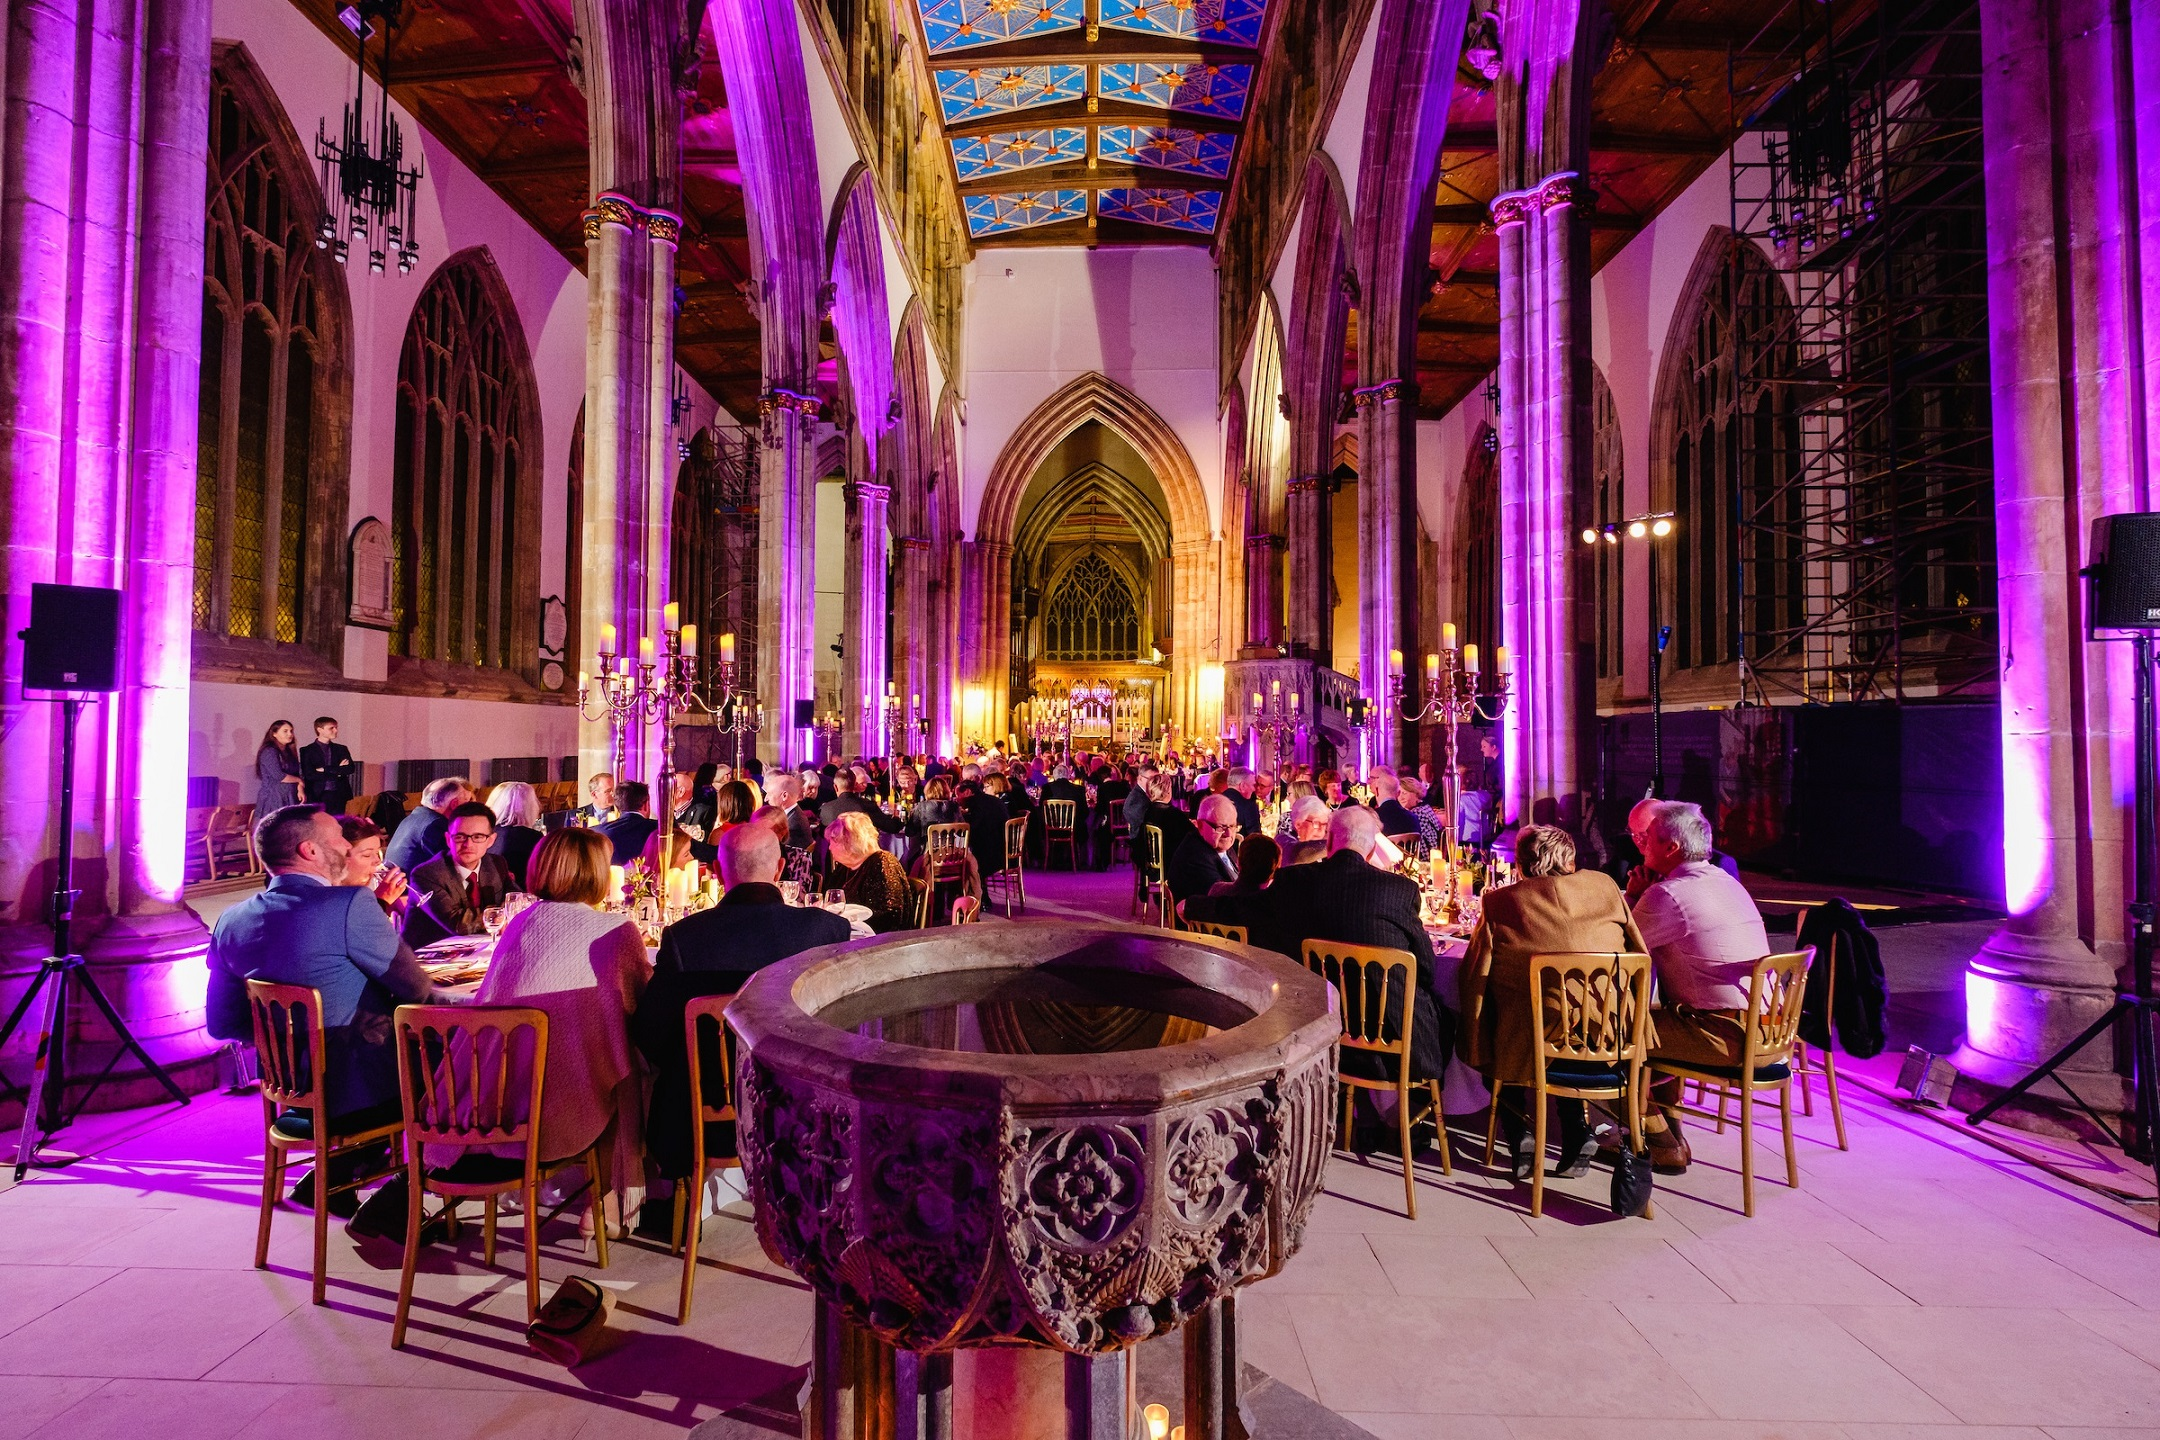 Now cleared of pews and with newly-installed limestone flooring, Hull Minster's Nave provided a fabulous setting for the church's fund-raising gala dinner.